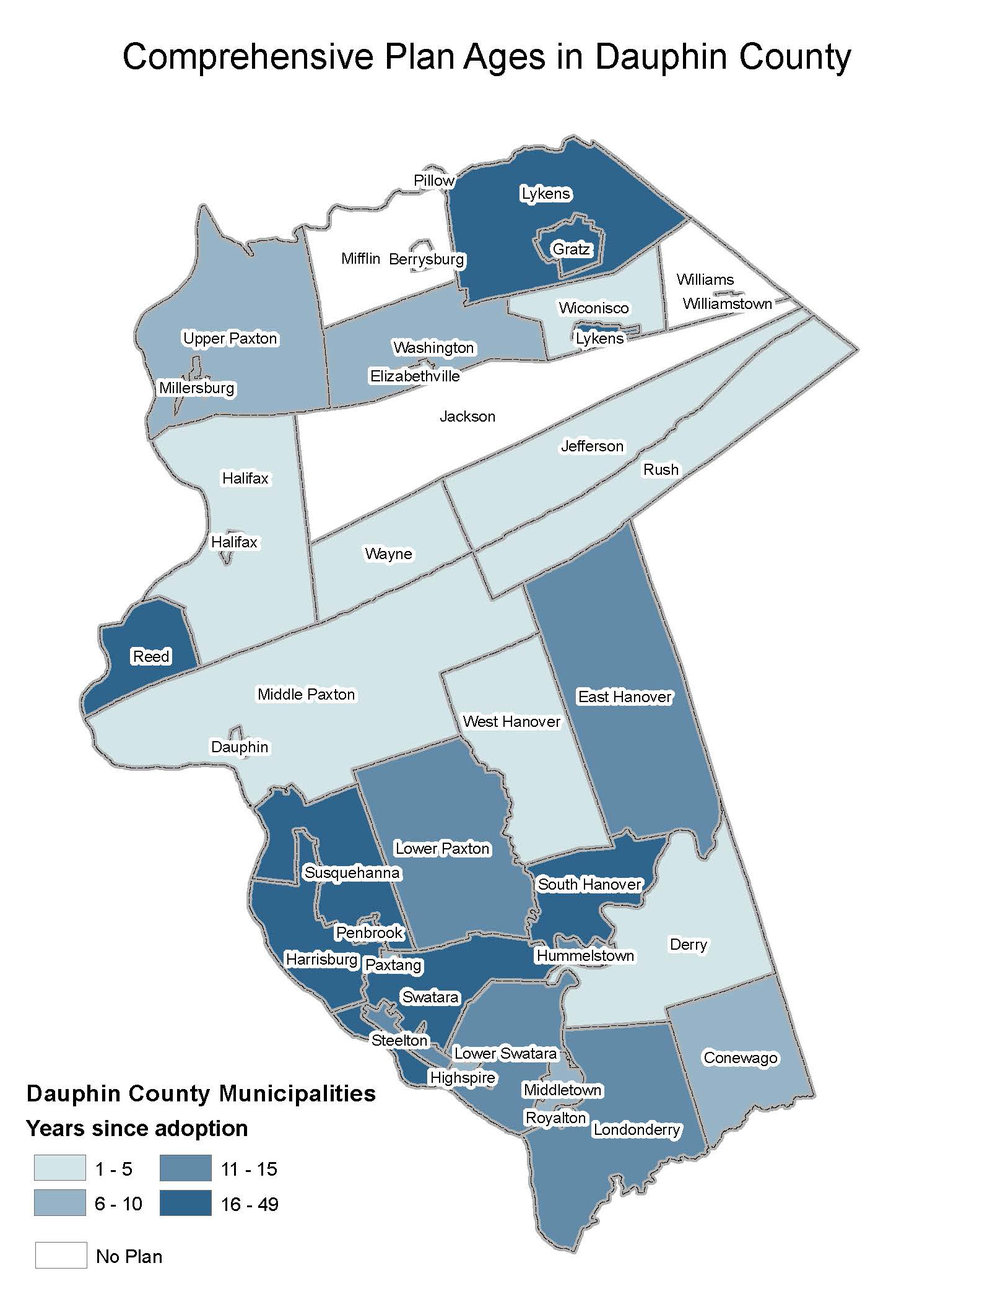 Click for Comprehensive Plan Ages in Dauphin County (PDF)